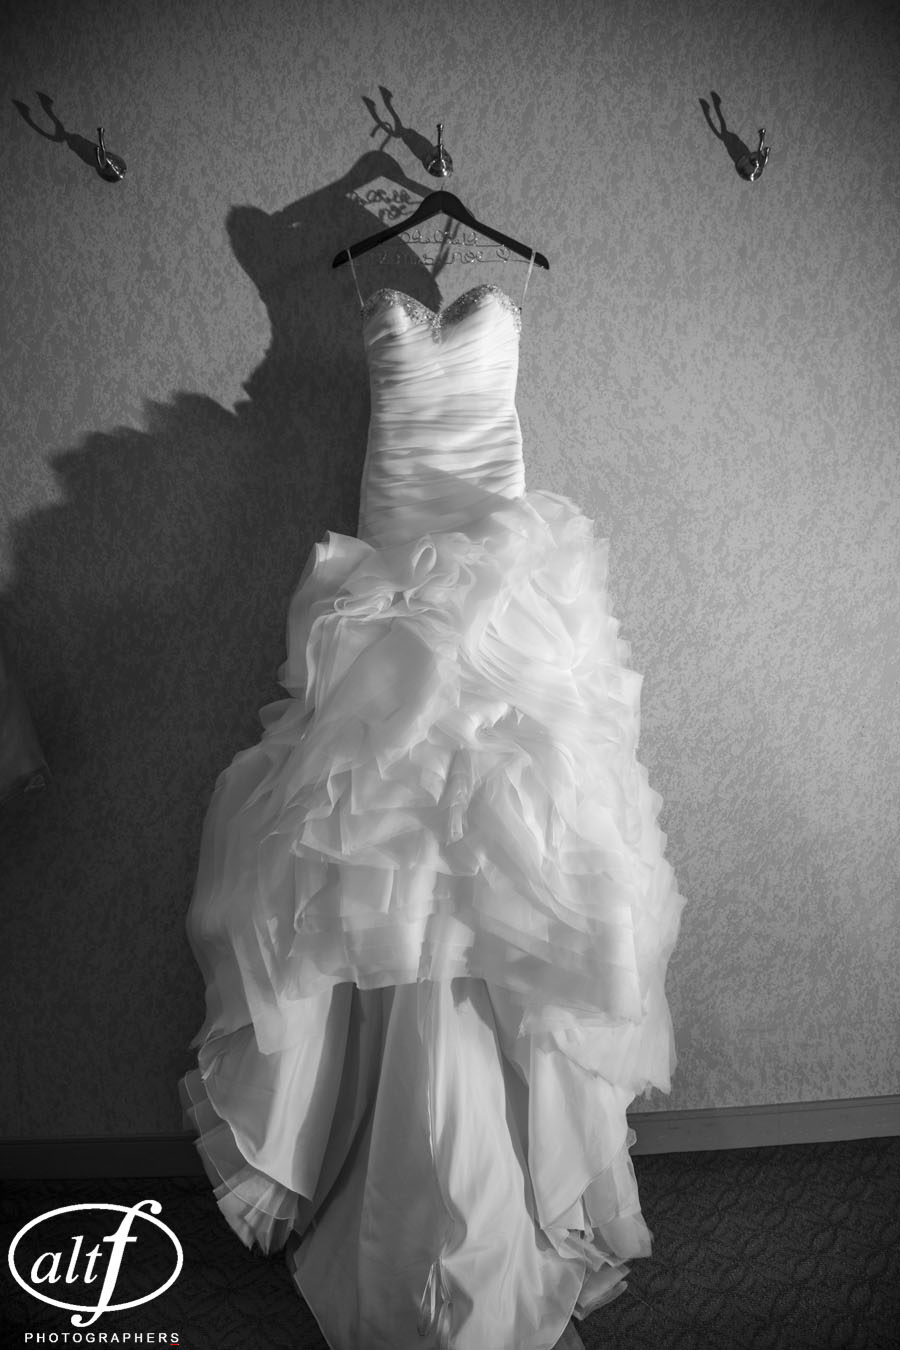 Spring calls for soft and romantic wedding dresses.  This bride selected a Demetrios gown with ruffles and raw edges in a light weight chiffon.  The neckline was customized for her, cut into a sweetheart shape and lined with crystal and pearl bead work.  Amy Noe.  April 2014.  Photo by Alt F Photography.